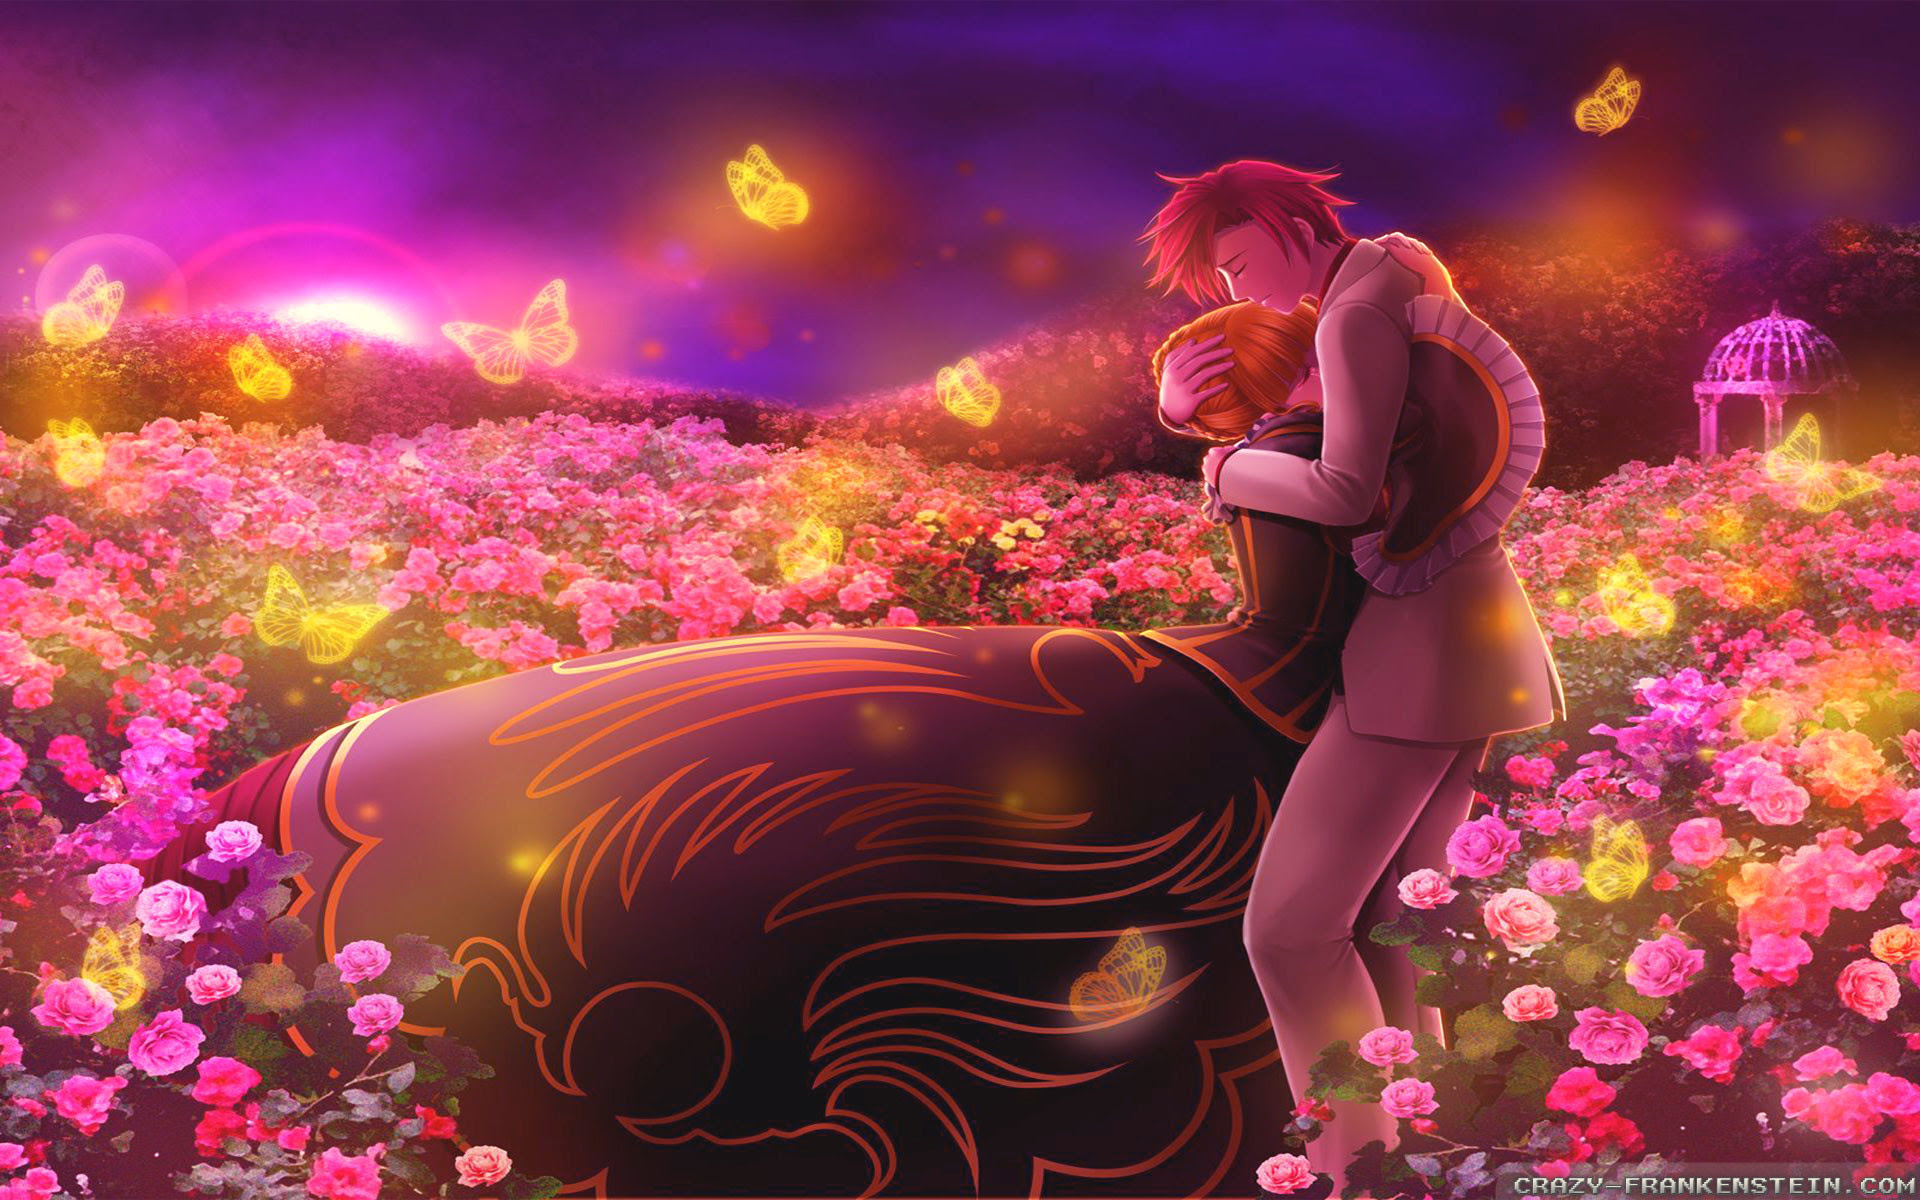 Beautiful Love Backgrounds 58+ images